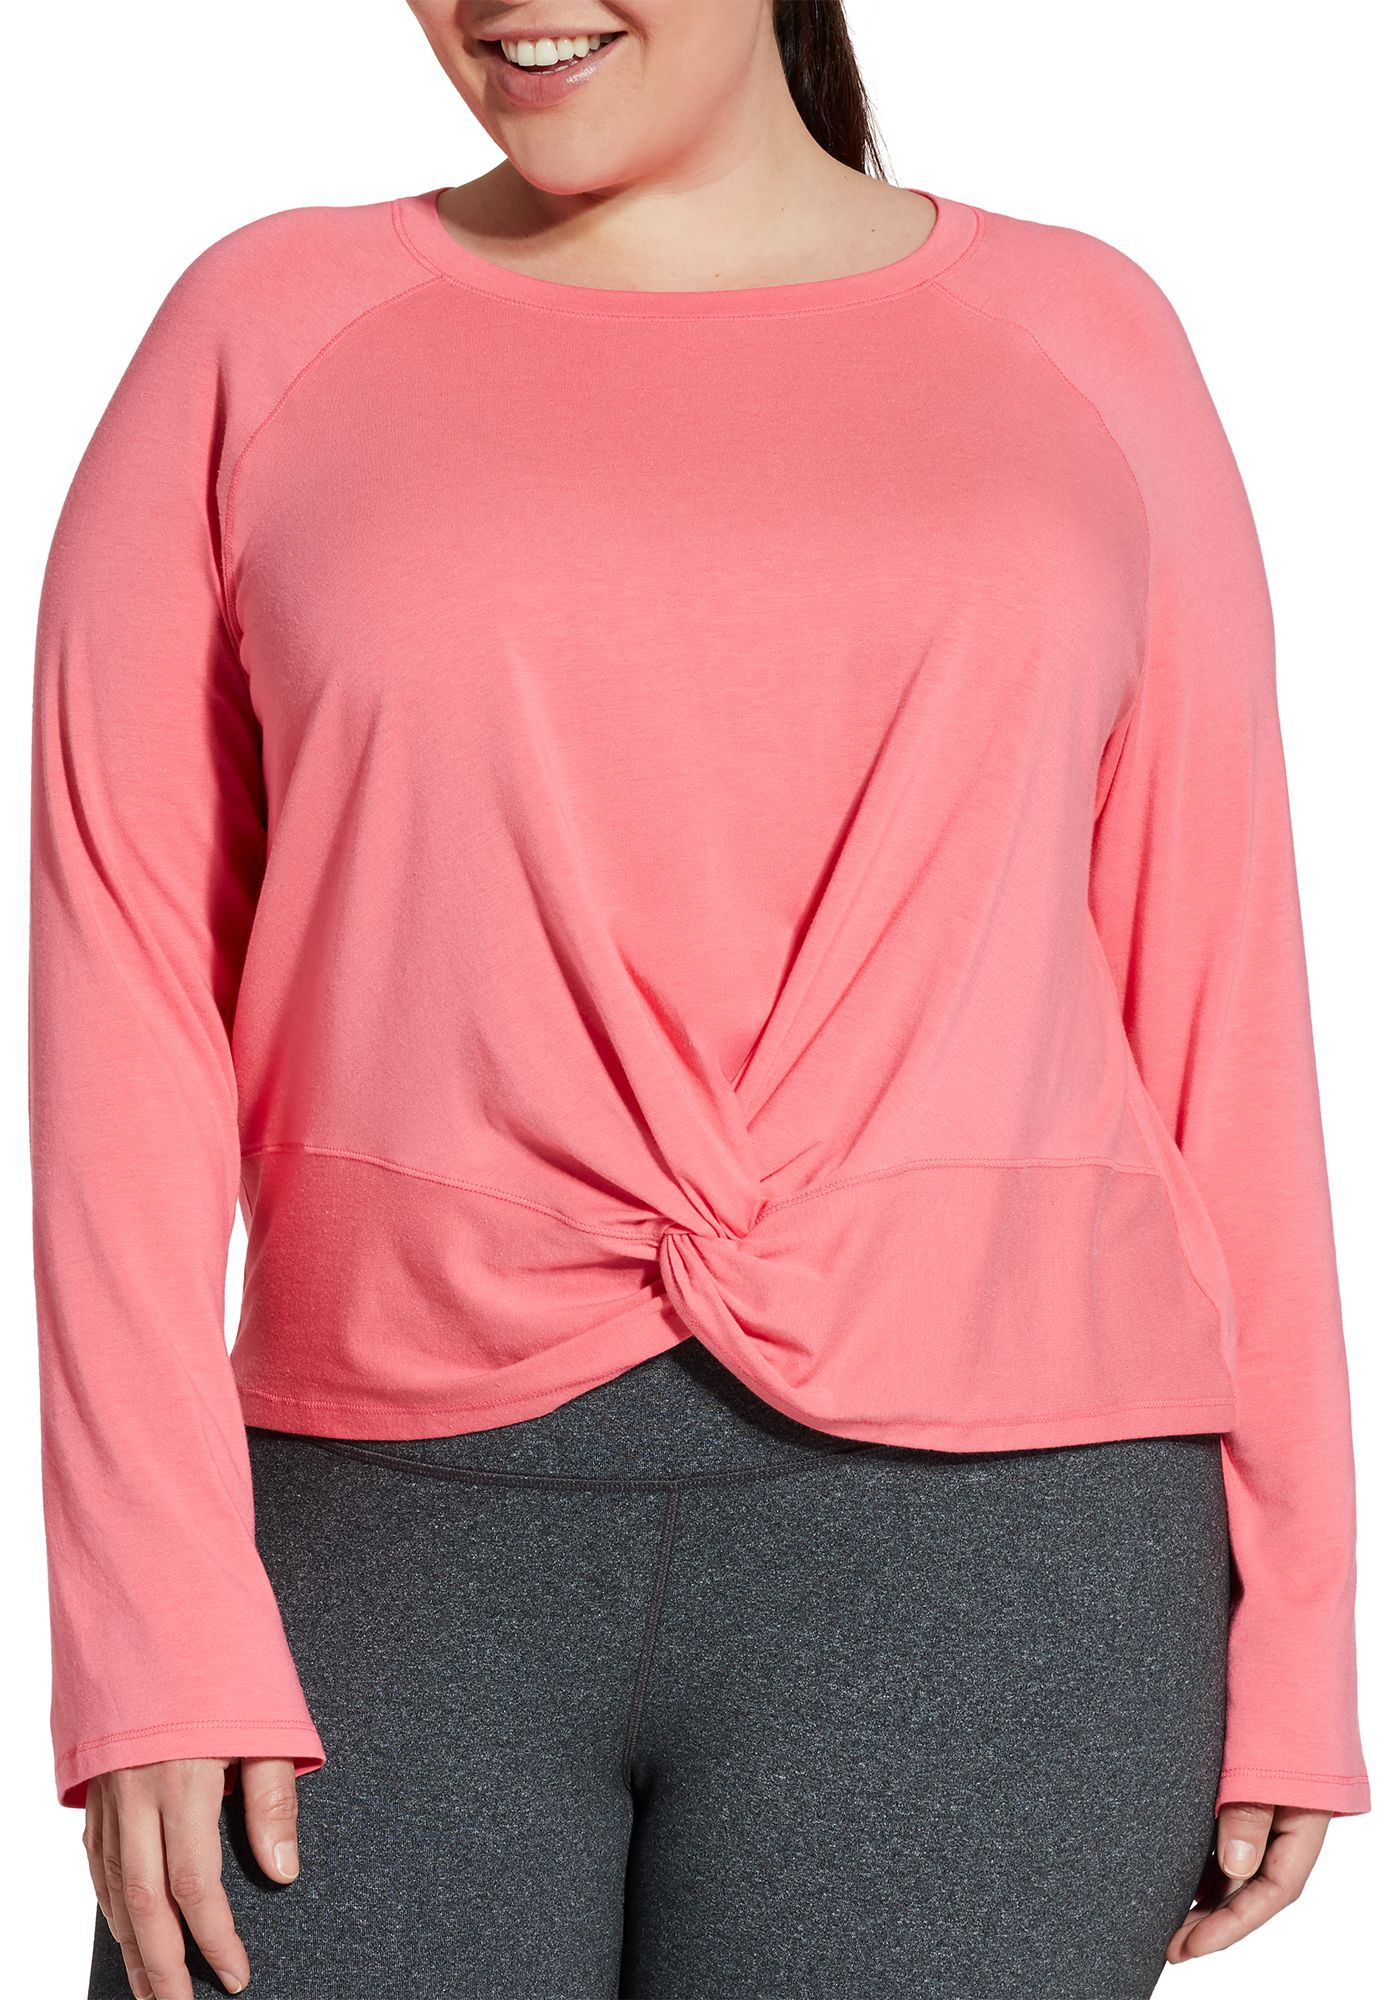 CALIA by Carrie Underwood Women's Plus Size Knot Front Long Sleeve Shirt